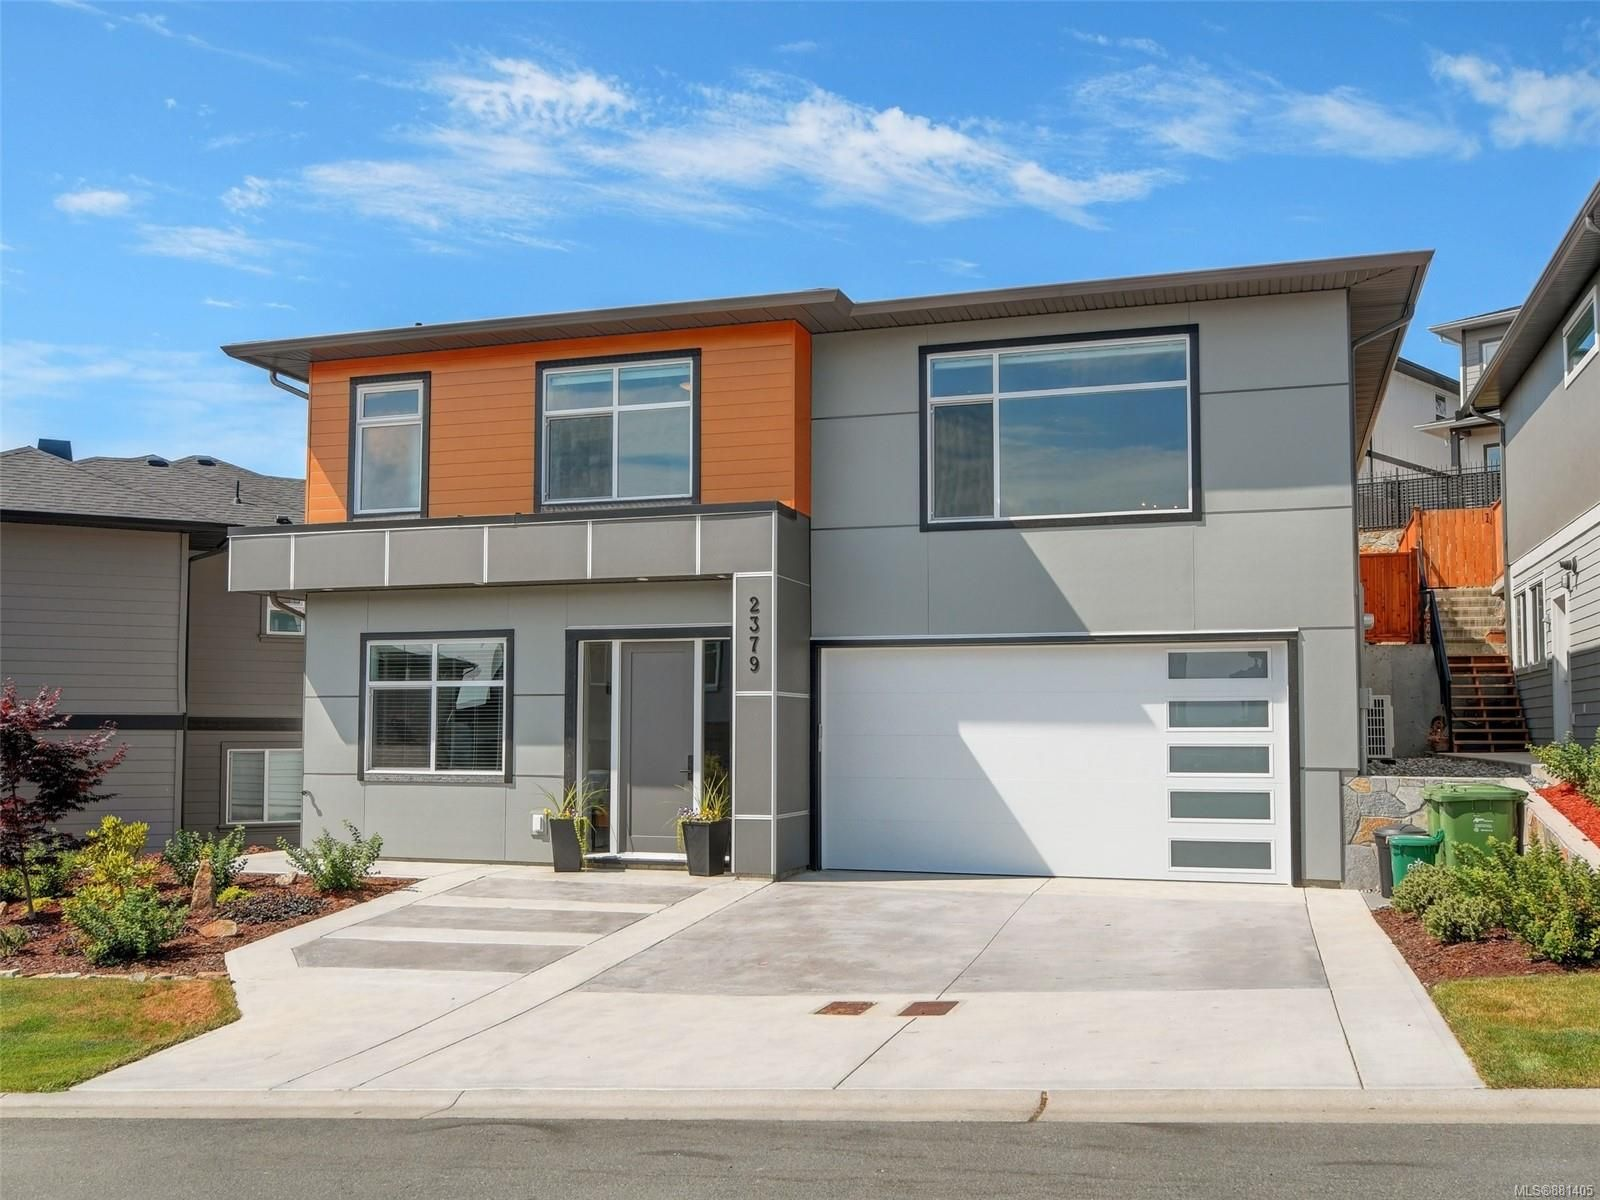 Main Photo: 2379 Azurite Cres in : La Bear Mountain House for sale (Langford)  : MLS®# 881405